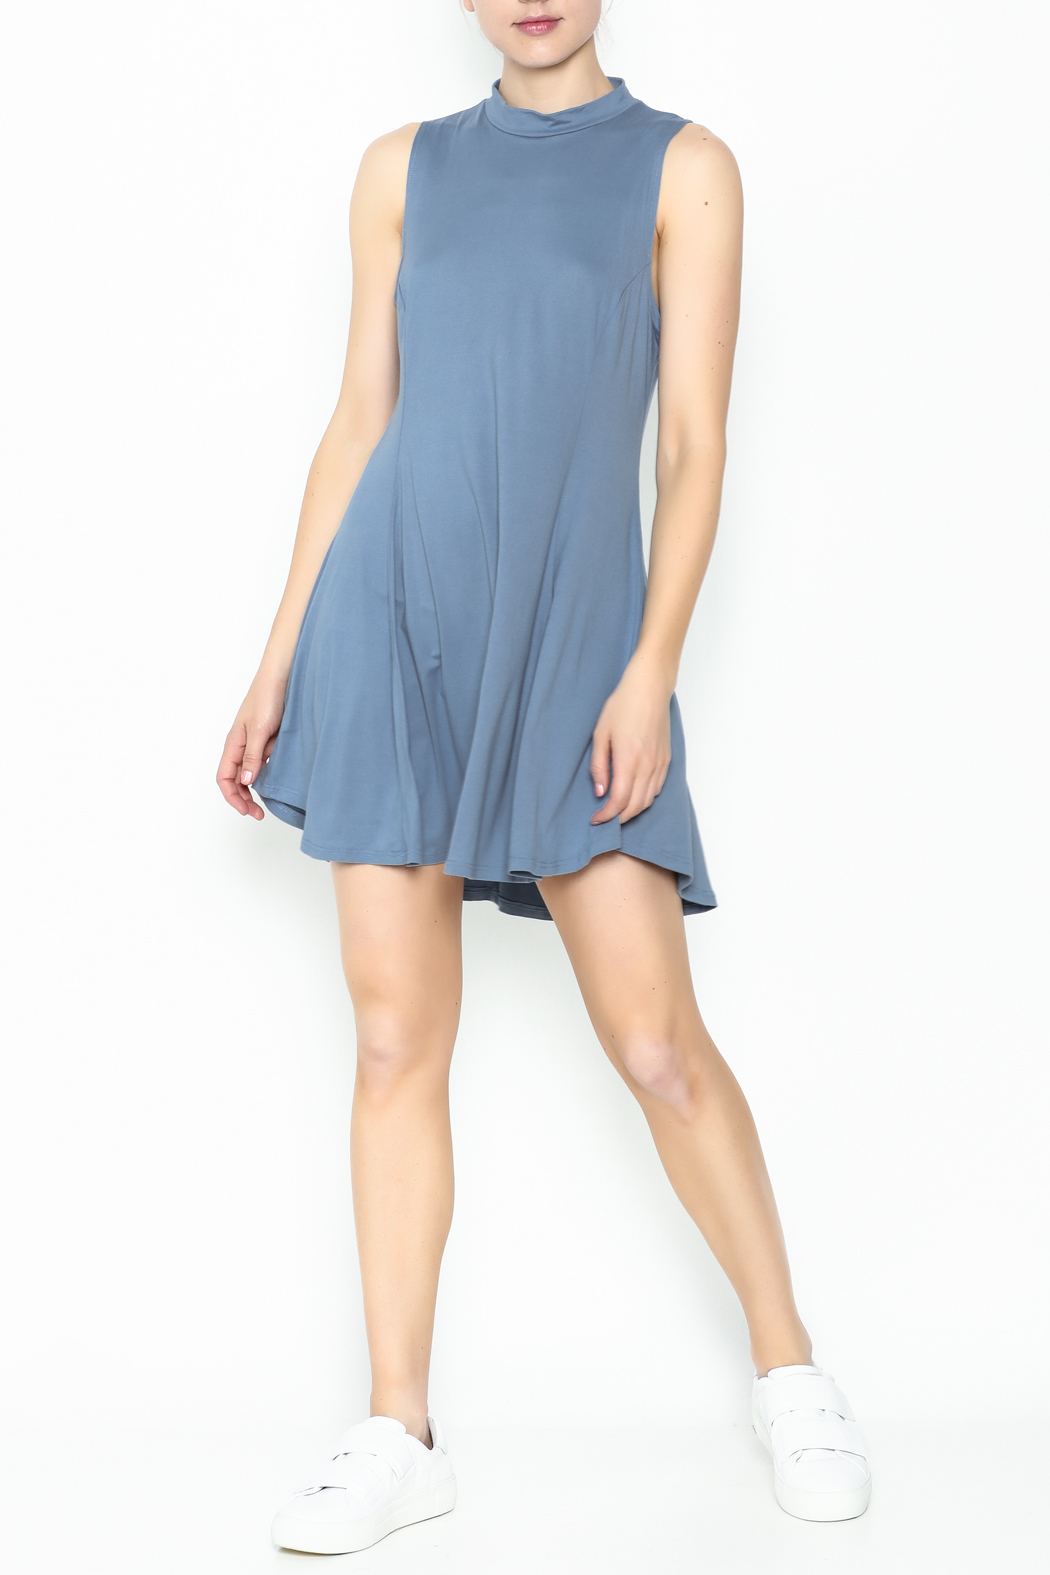 jella c Open Back Skater Dress - Side Cropped Image